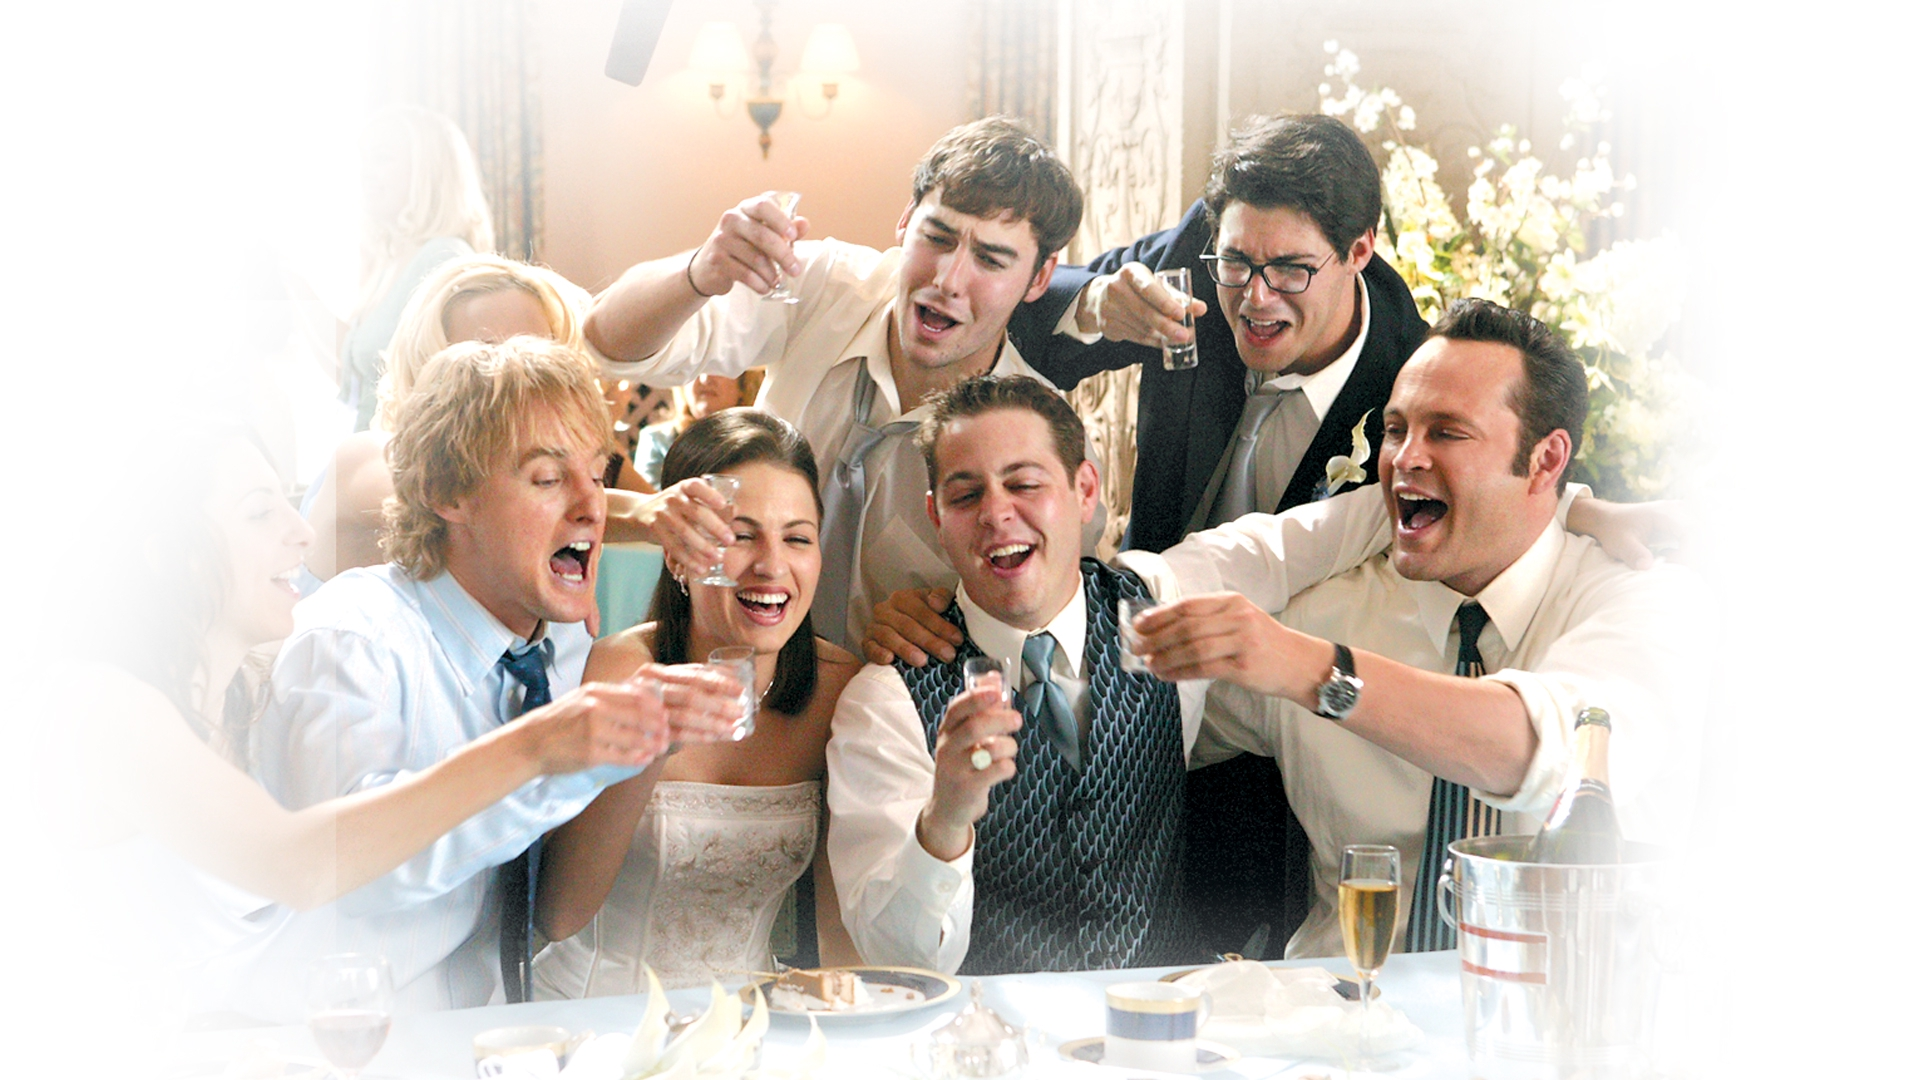 wedding crashers sociology The screw you effect a psychological term when a partic-p-nt is in an experiment you may not get accurate results because they are aware of the experiment and in turn go out of their way to do everything wrong or go against everything u ask them to.